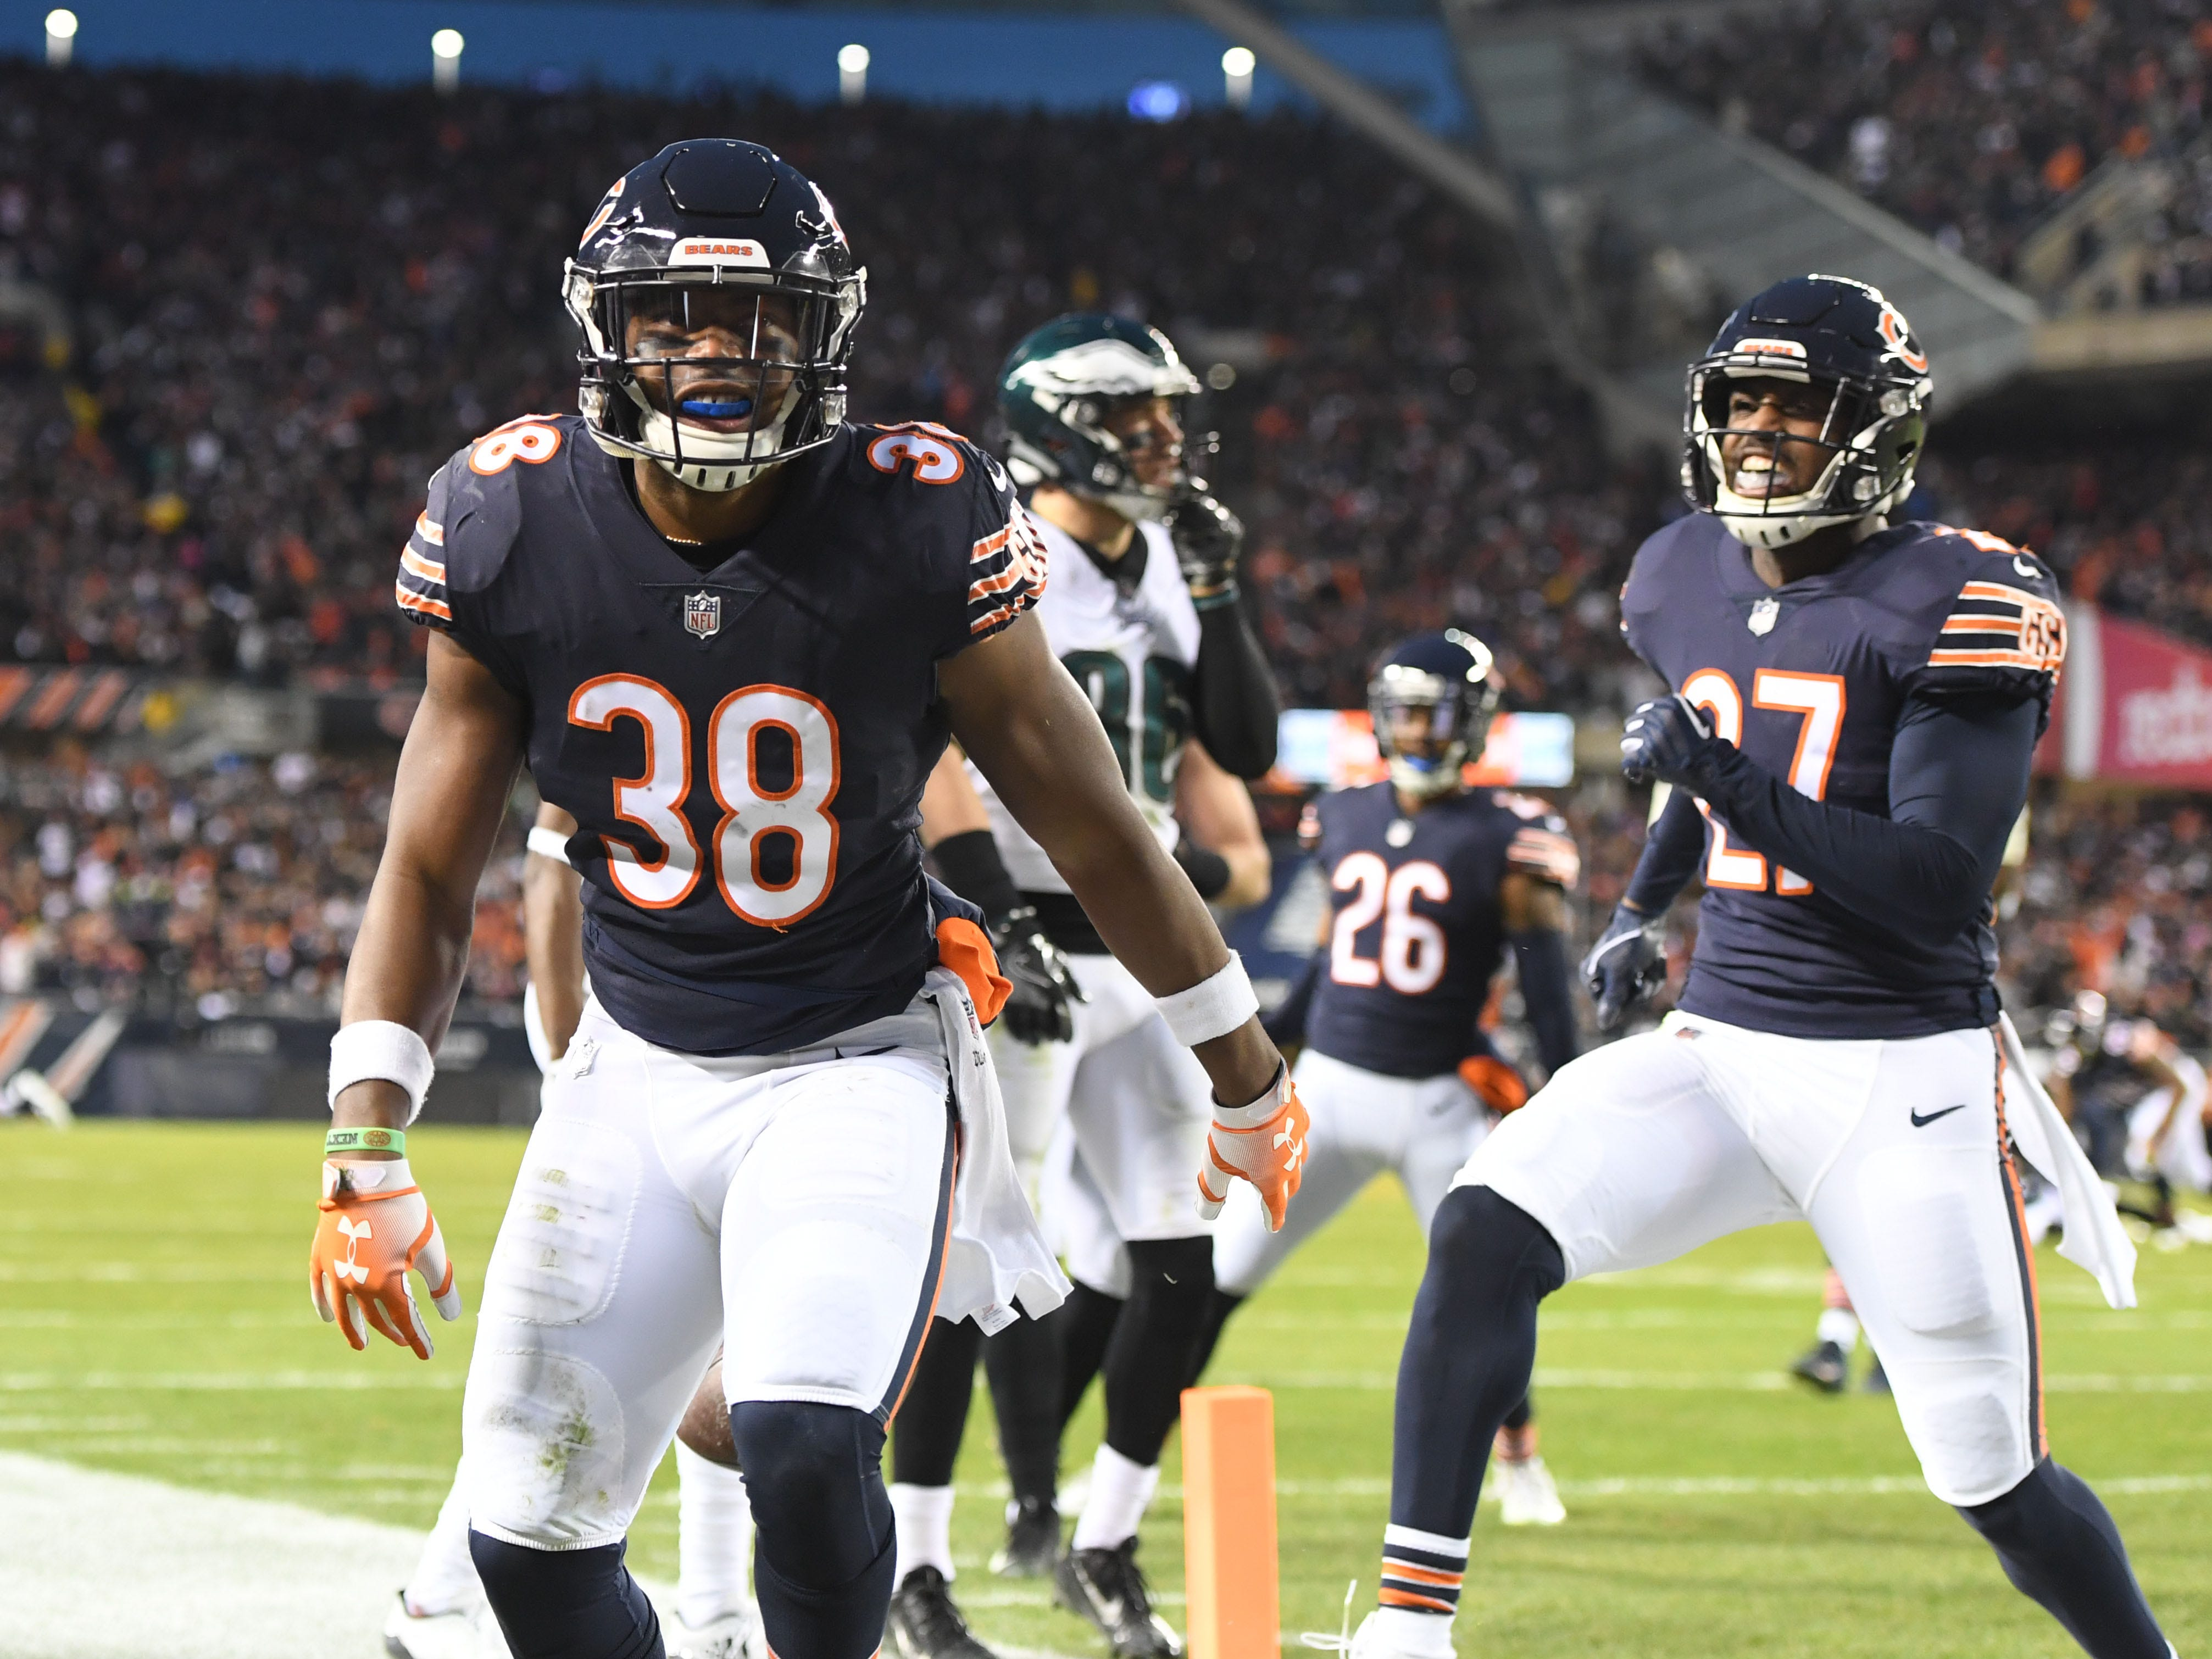 Chicago Bears strong safety Adrian Amos (38) celebrates with defensive back Sherrick McManis (27) after an interception against the Philadelphia Eagles in the first half of a NFC Wild Card playoff football game at Soldier Field.